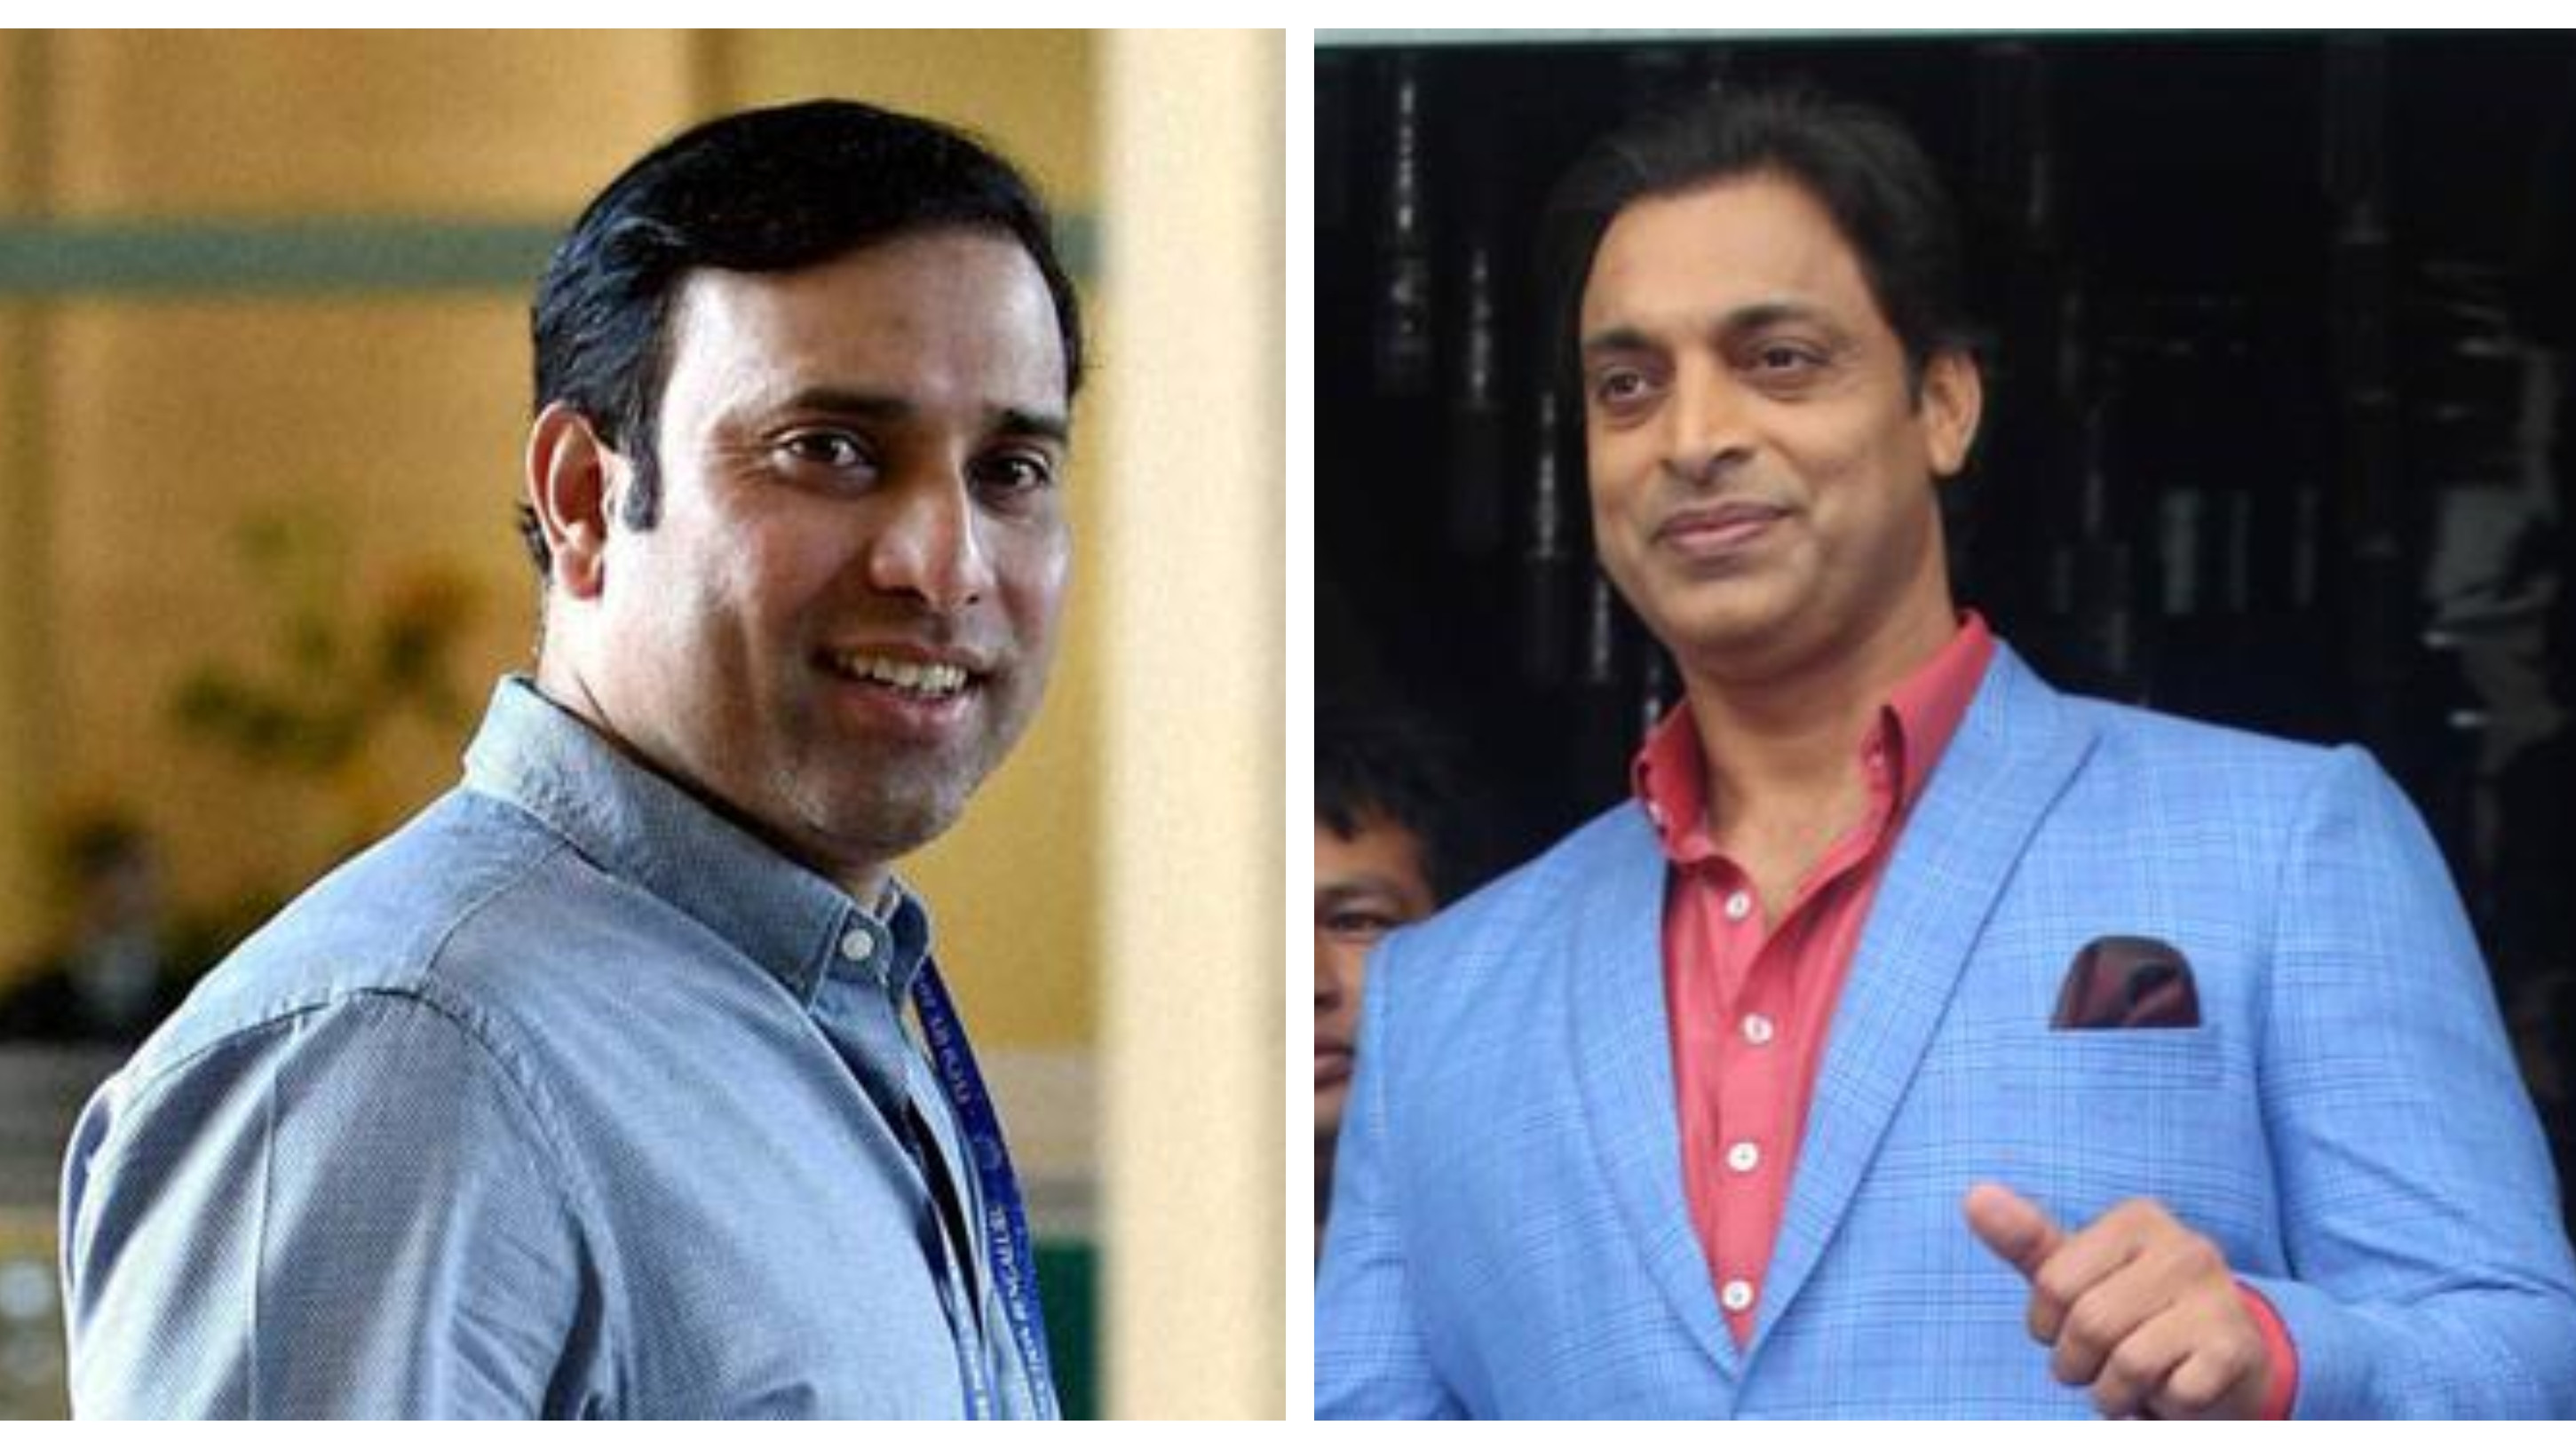 VVS Laxman and Shoaib Akhtar set for coaching stints in UAE T20 League